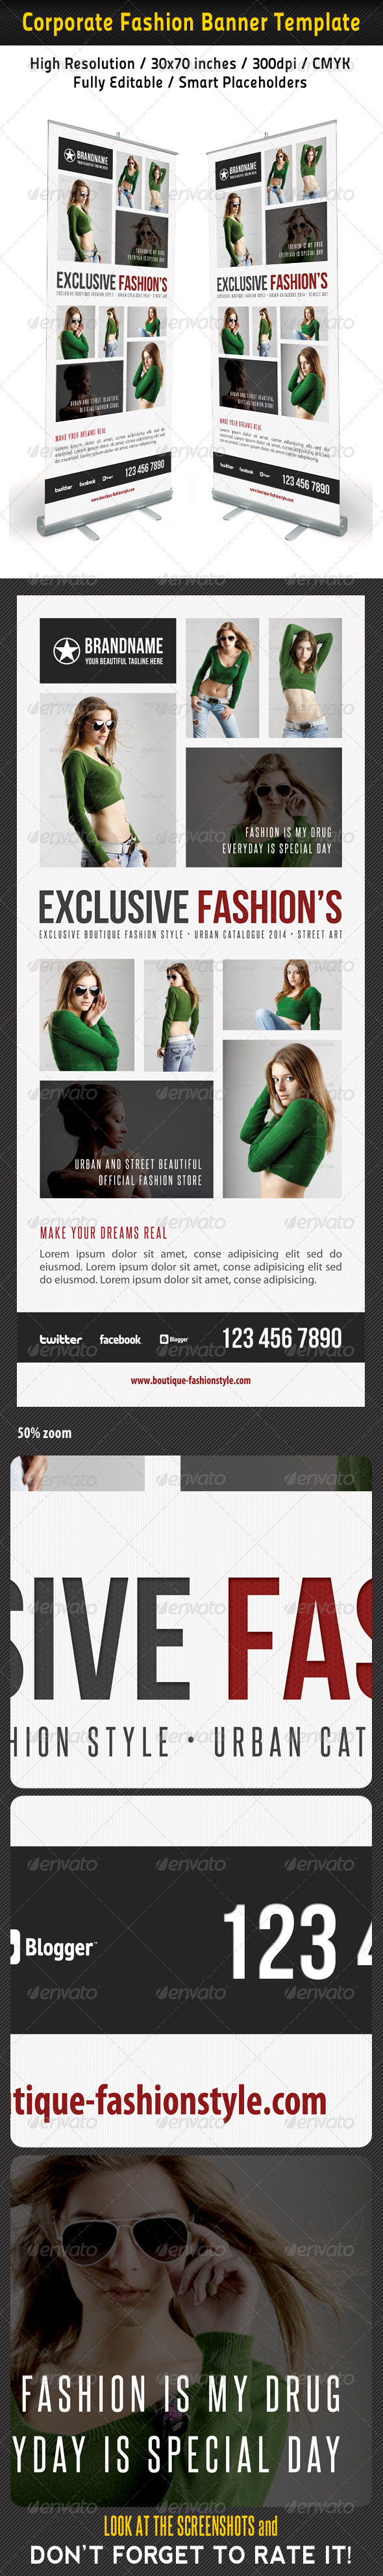 Fashion Multipurpose Banner Template 34 - Signage Print Templates